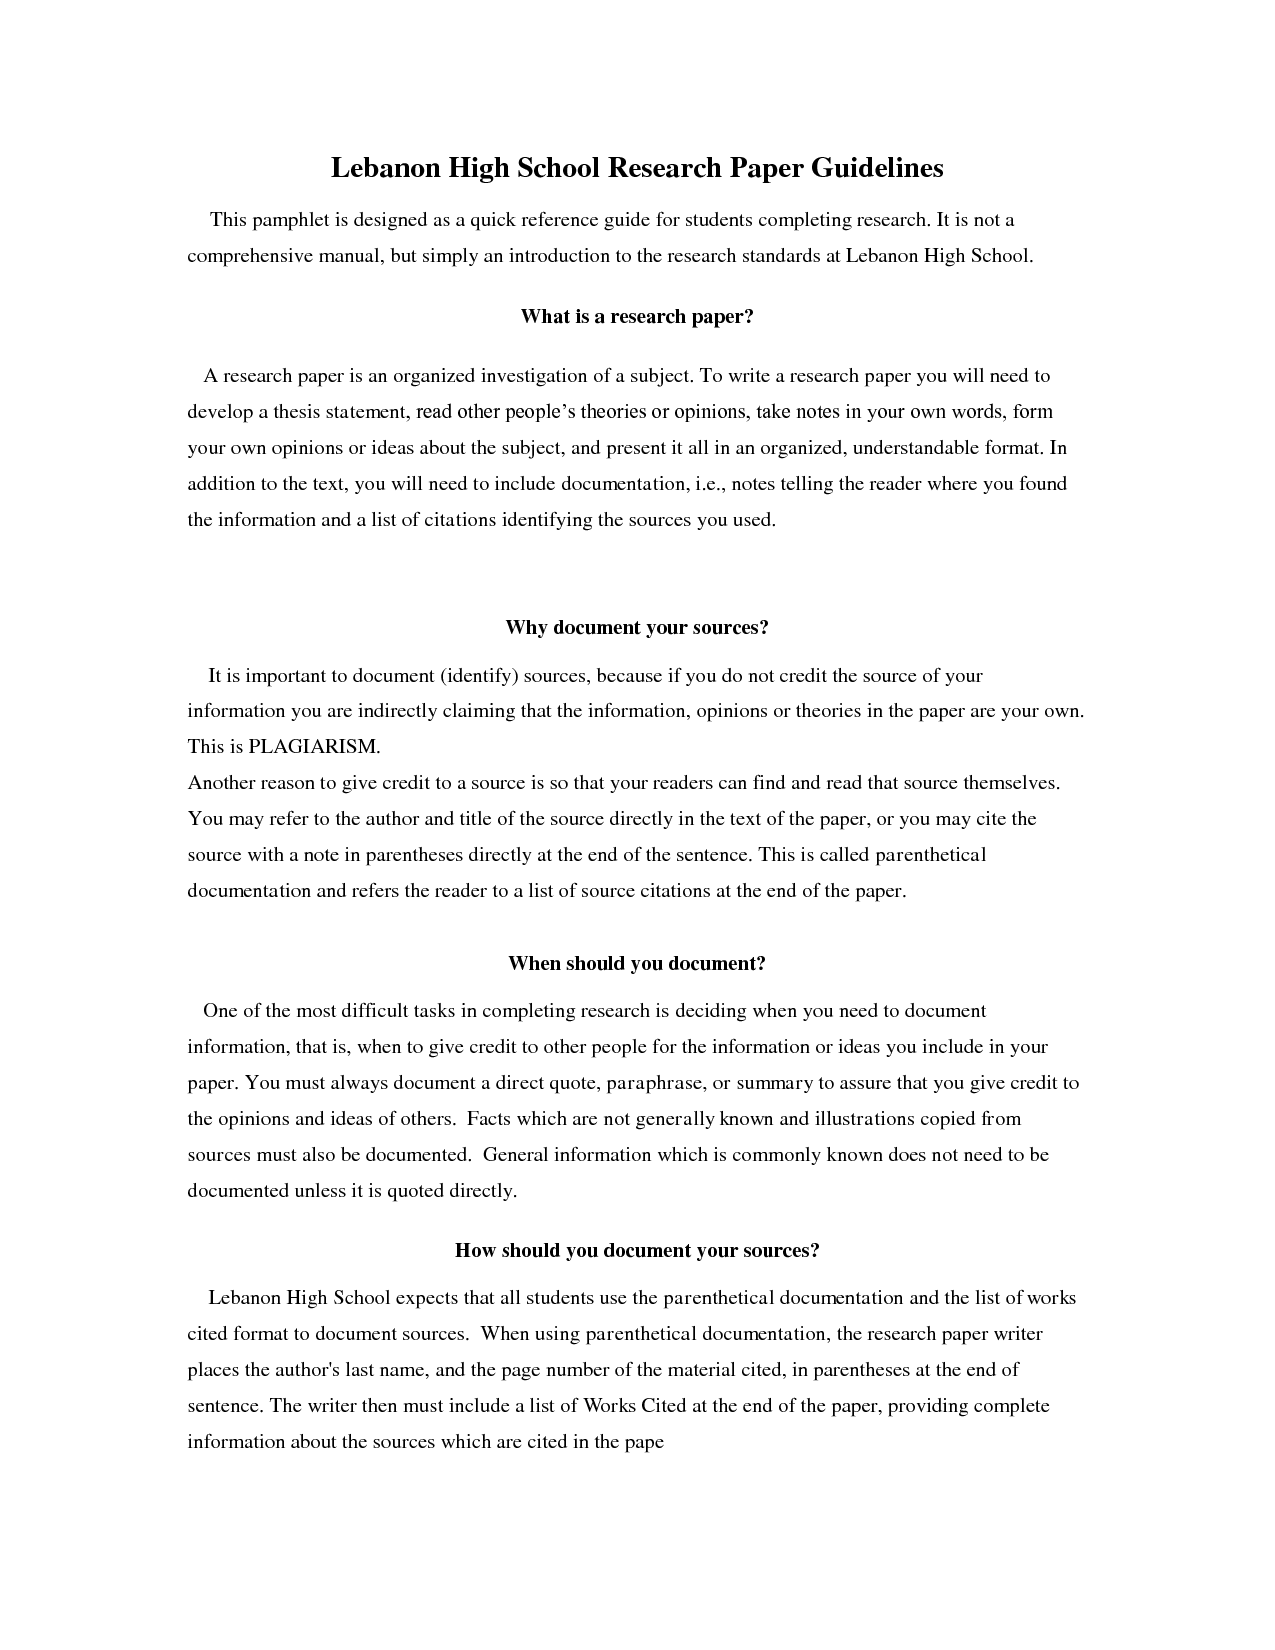 024 Research Paper Good Singular Topic Topics 2019 Ideas In Business And Finance For College Students Full